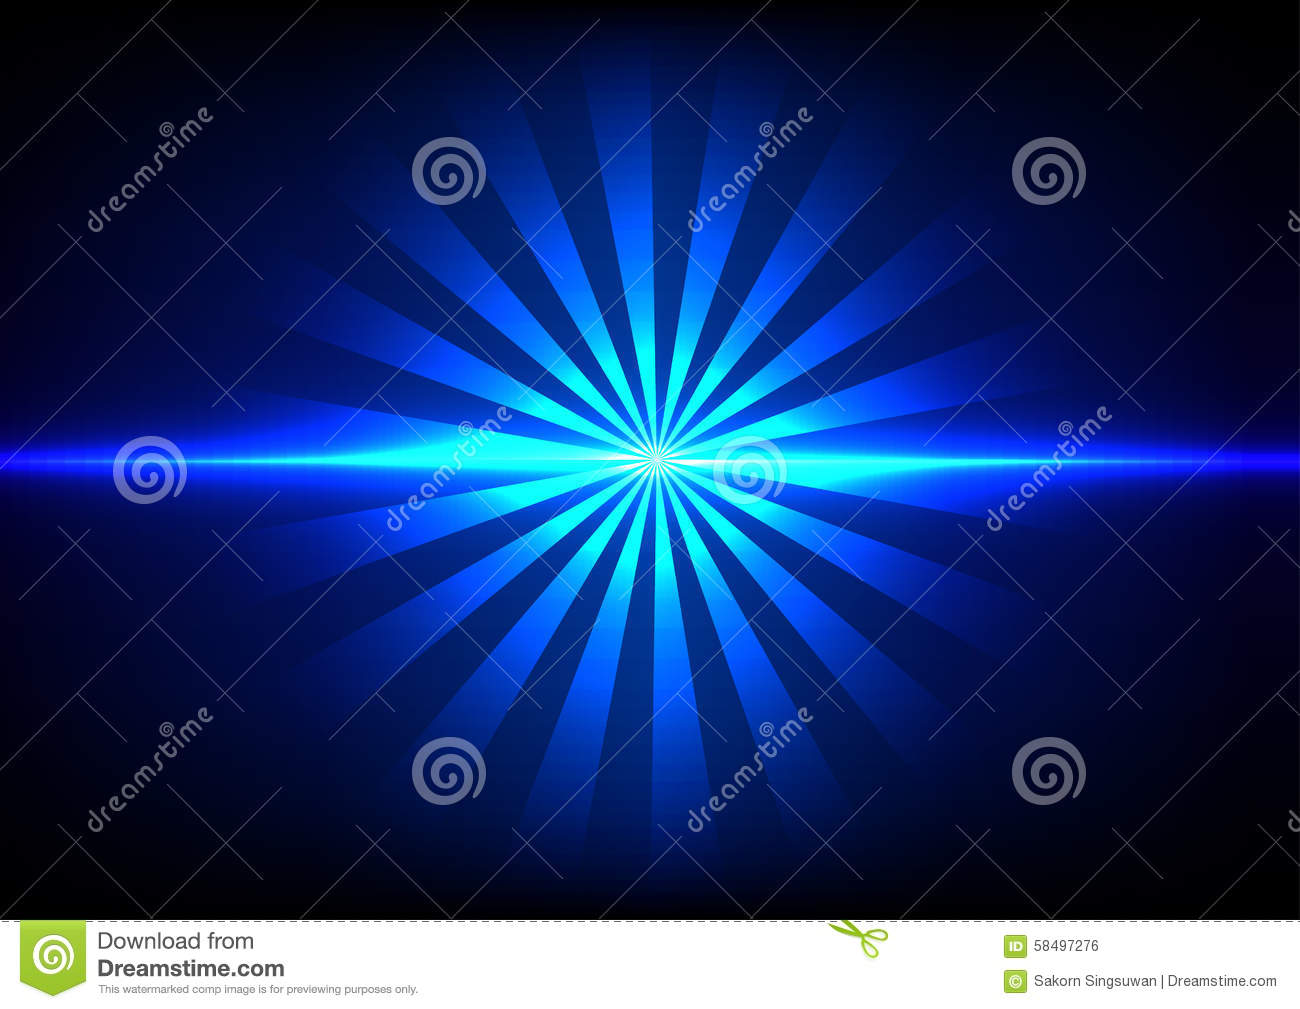 Abstract Blue Light Sunlight Effect Background Stock Vector ... for Sun Light Effect Background  70ref